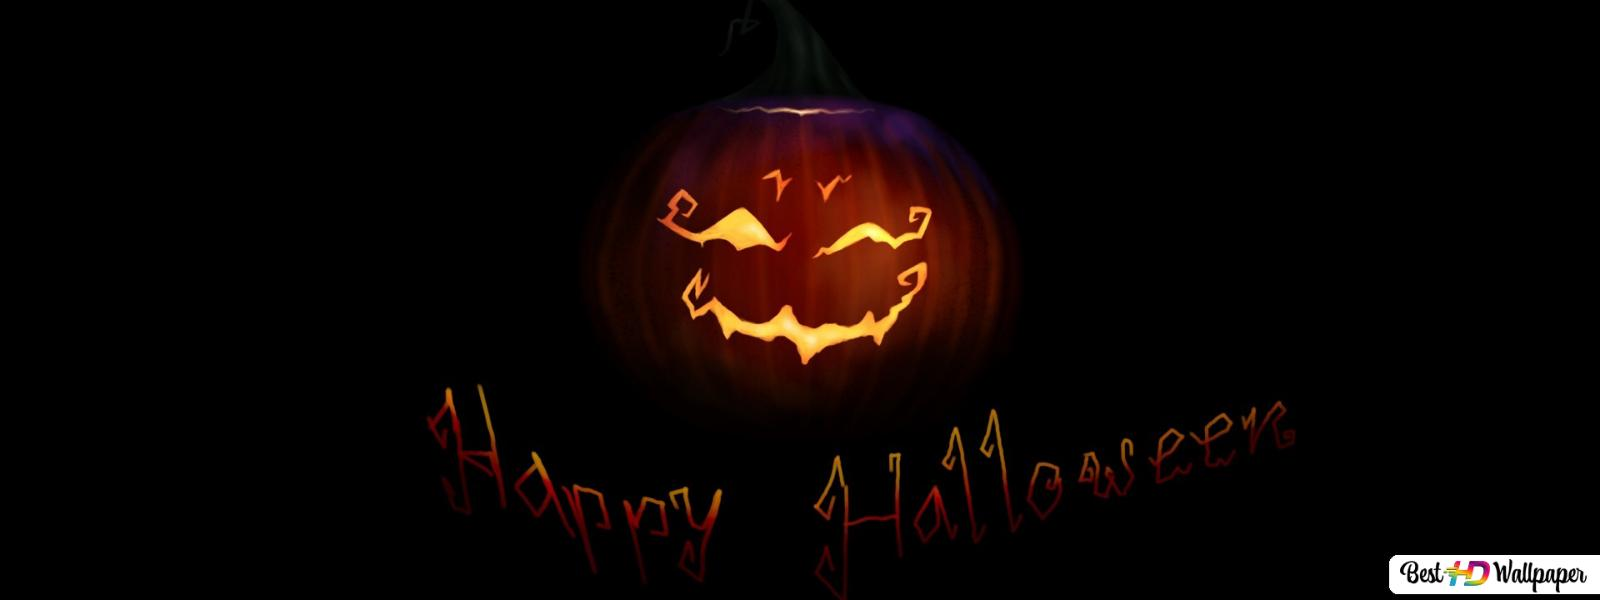 Grinning Jack O Lantern Hd Wallpaper Download